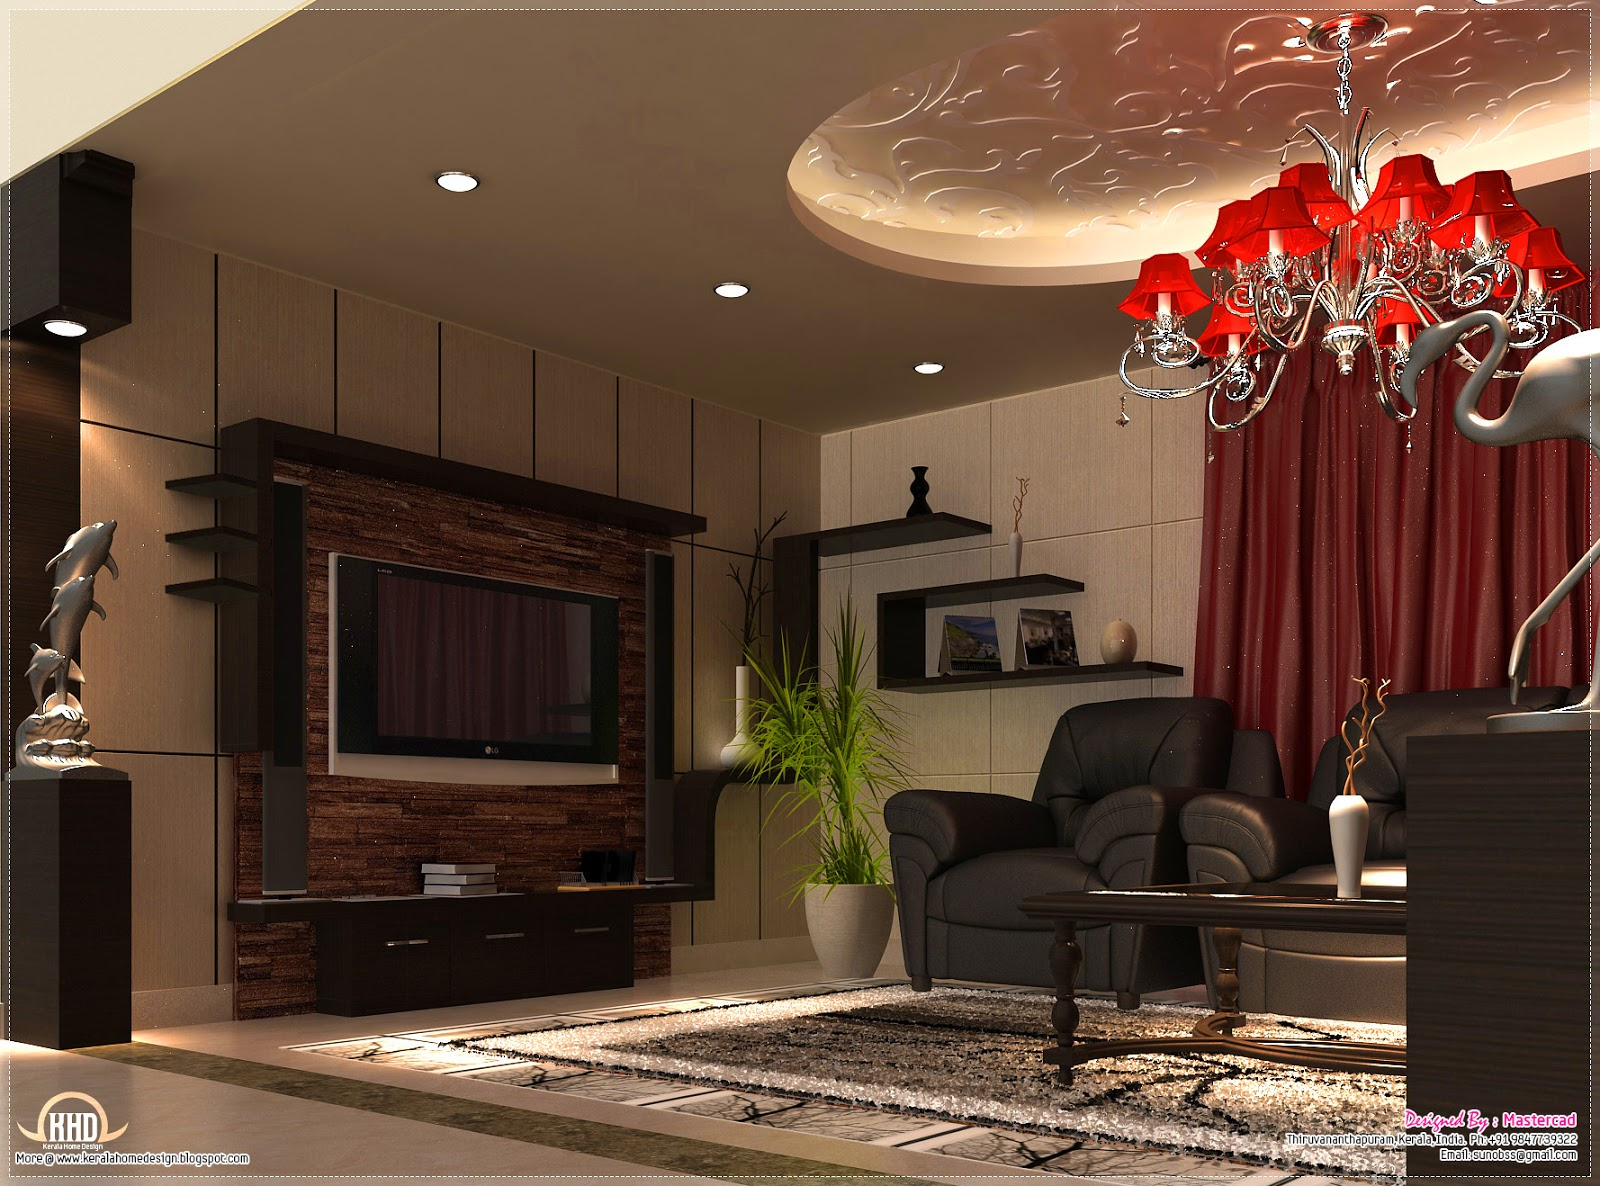 Indian interior design living room ideas trend home design and decor